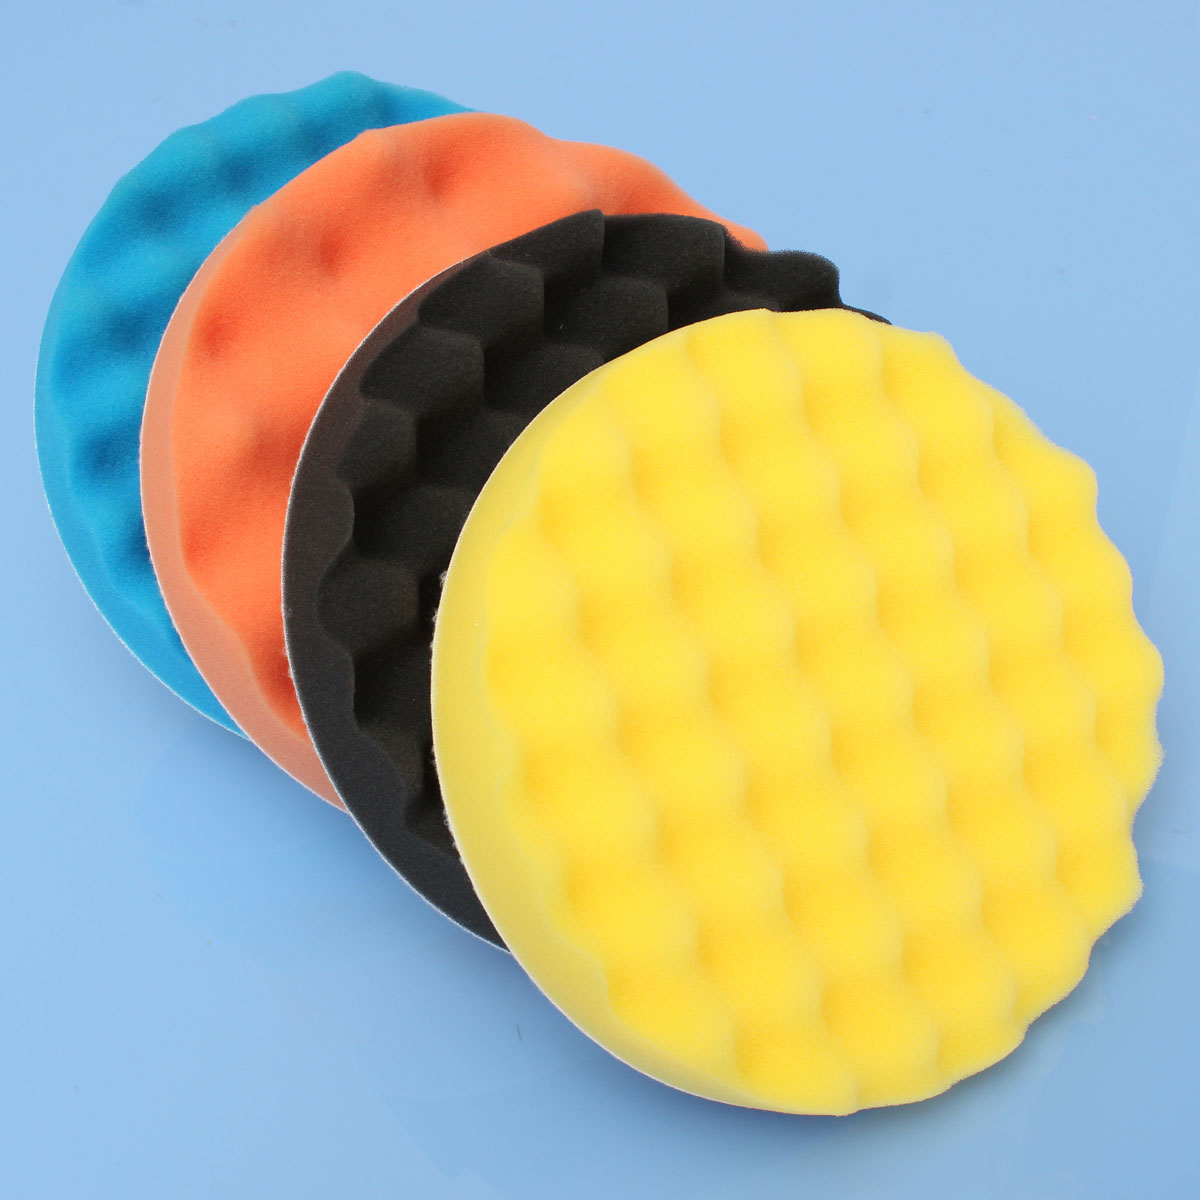 4pcs 7'' Sponge Foam Polishing Waxing Buffing Pads Polishers for bufferpad Car Coat Paint